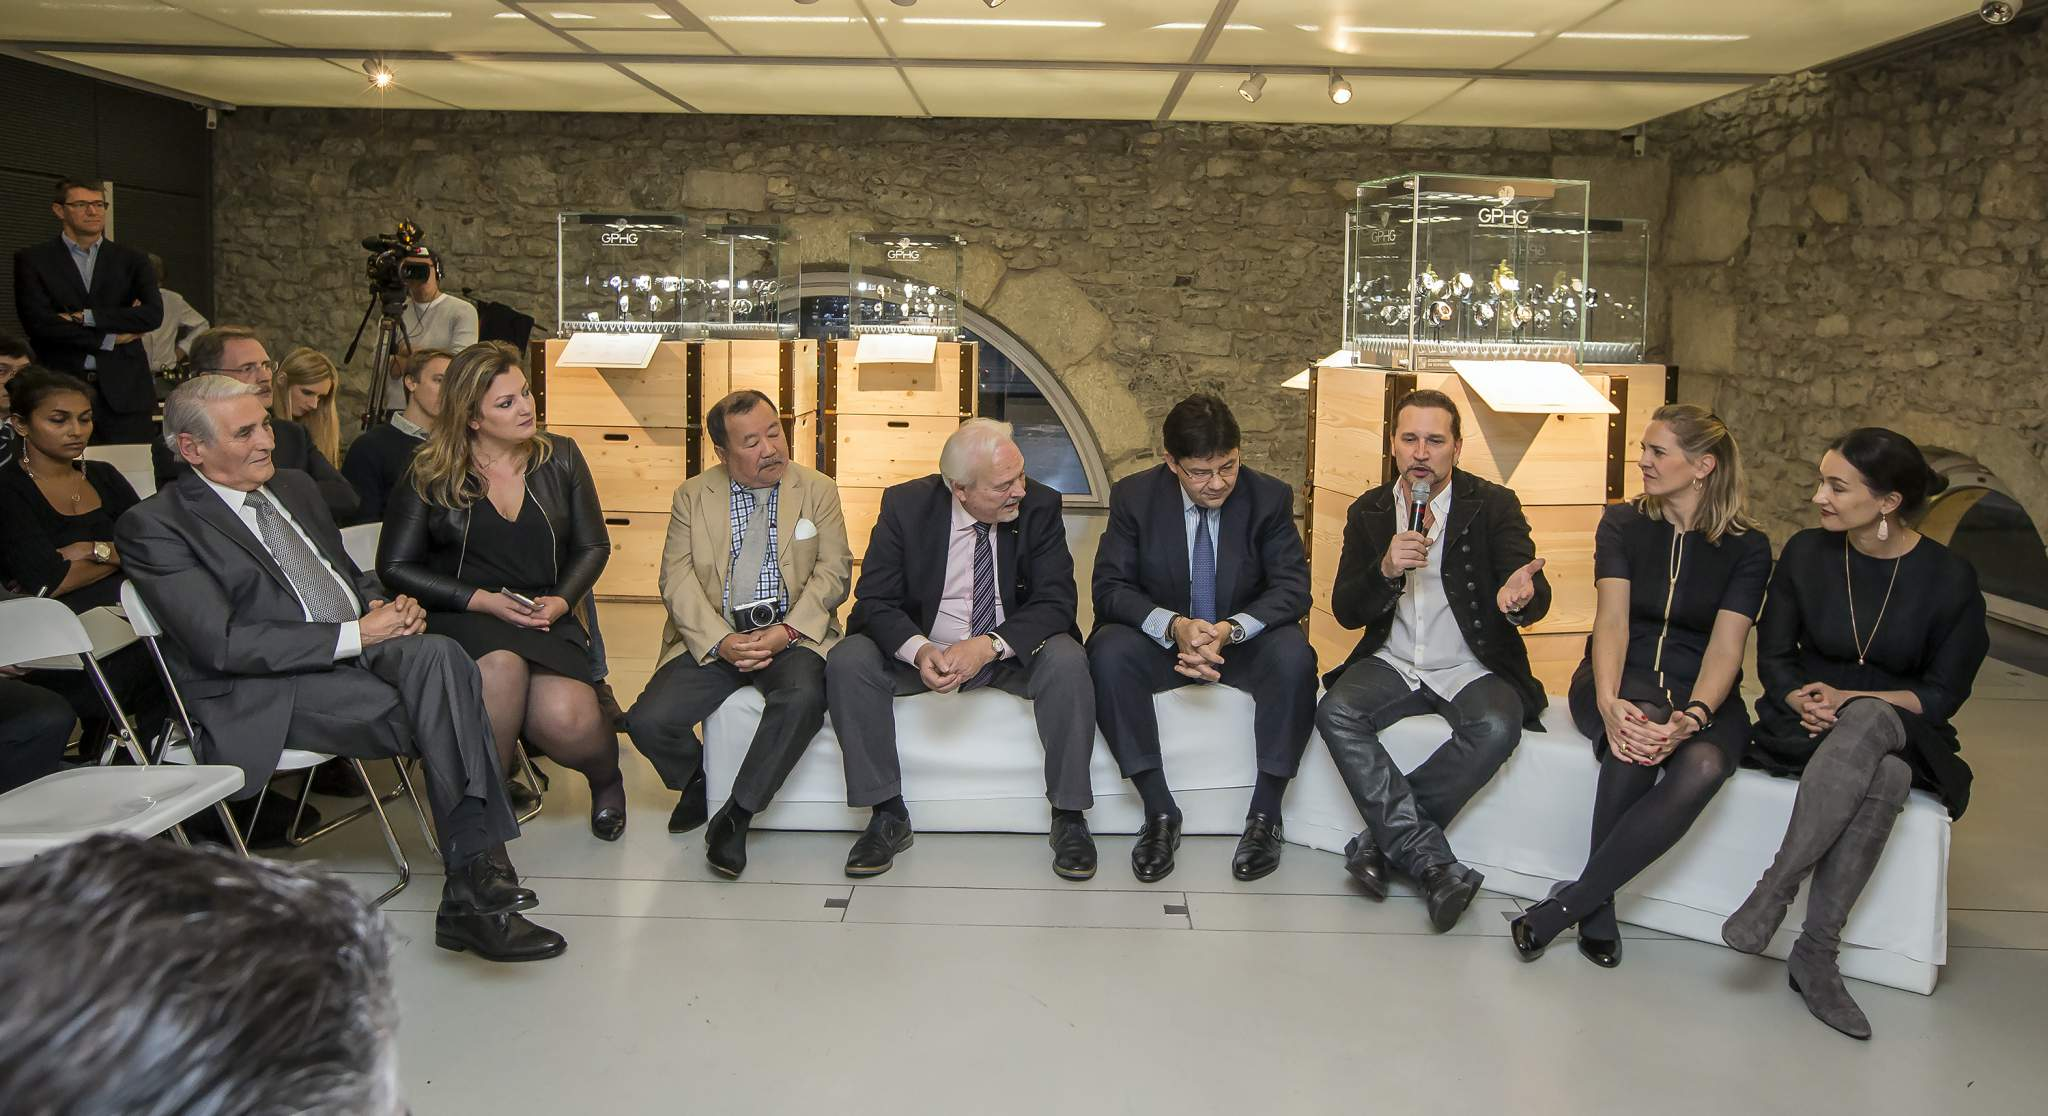 Carlo Lamprecht (President of the Foundation of the GPHG), Asta Ponzo (Press Manager of the Foundation of the GPHG), Takeshi Matsuyama (jury member of the GPHG 2015), Philippe Dufour (jury member of the GPHG 2015), Sean Li (jury member of the GPHG 2015), Eric Singer (jury member of the GPHG 2015), Sarah Arnett (Communication Director of Edmond de Rothschild Group), Carine Maillard (Director of the Foundation of the GPHG) at the press conference of the GPHG 2015 in Geneva